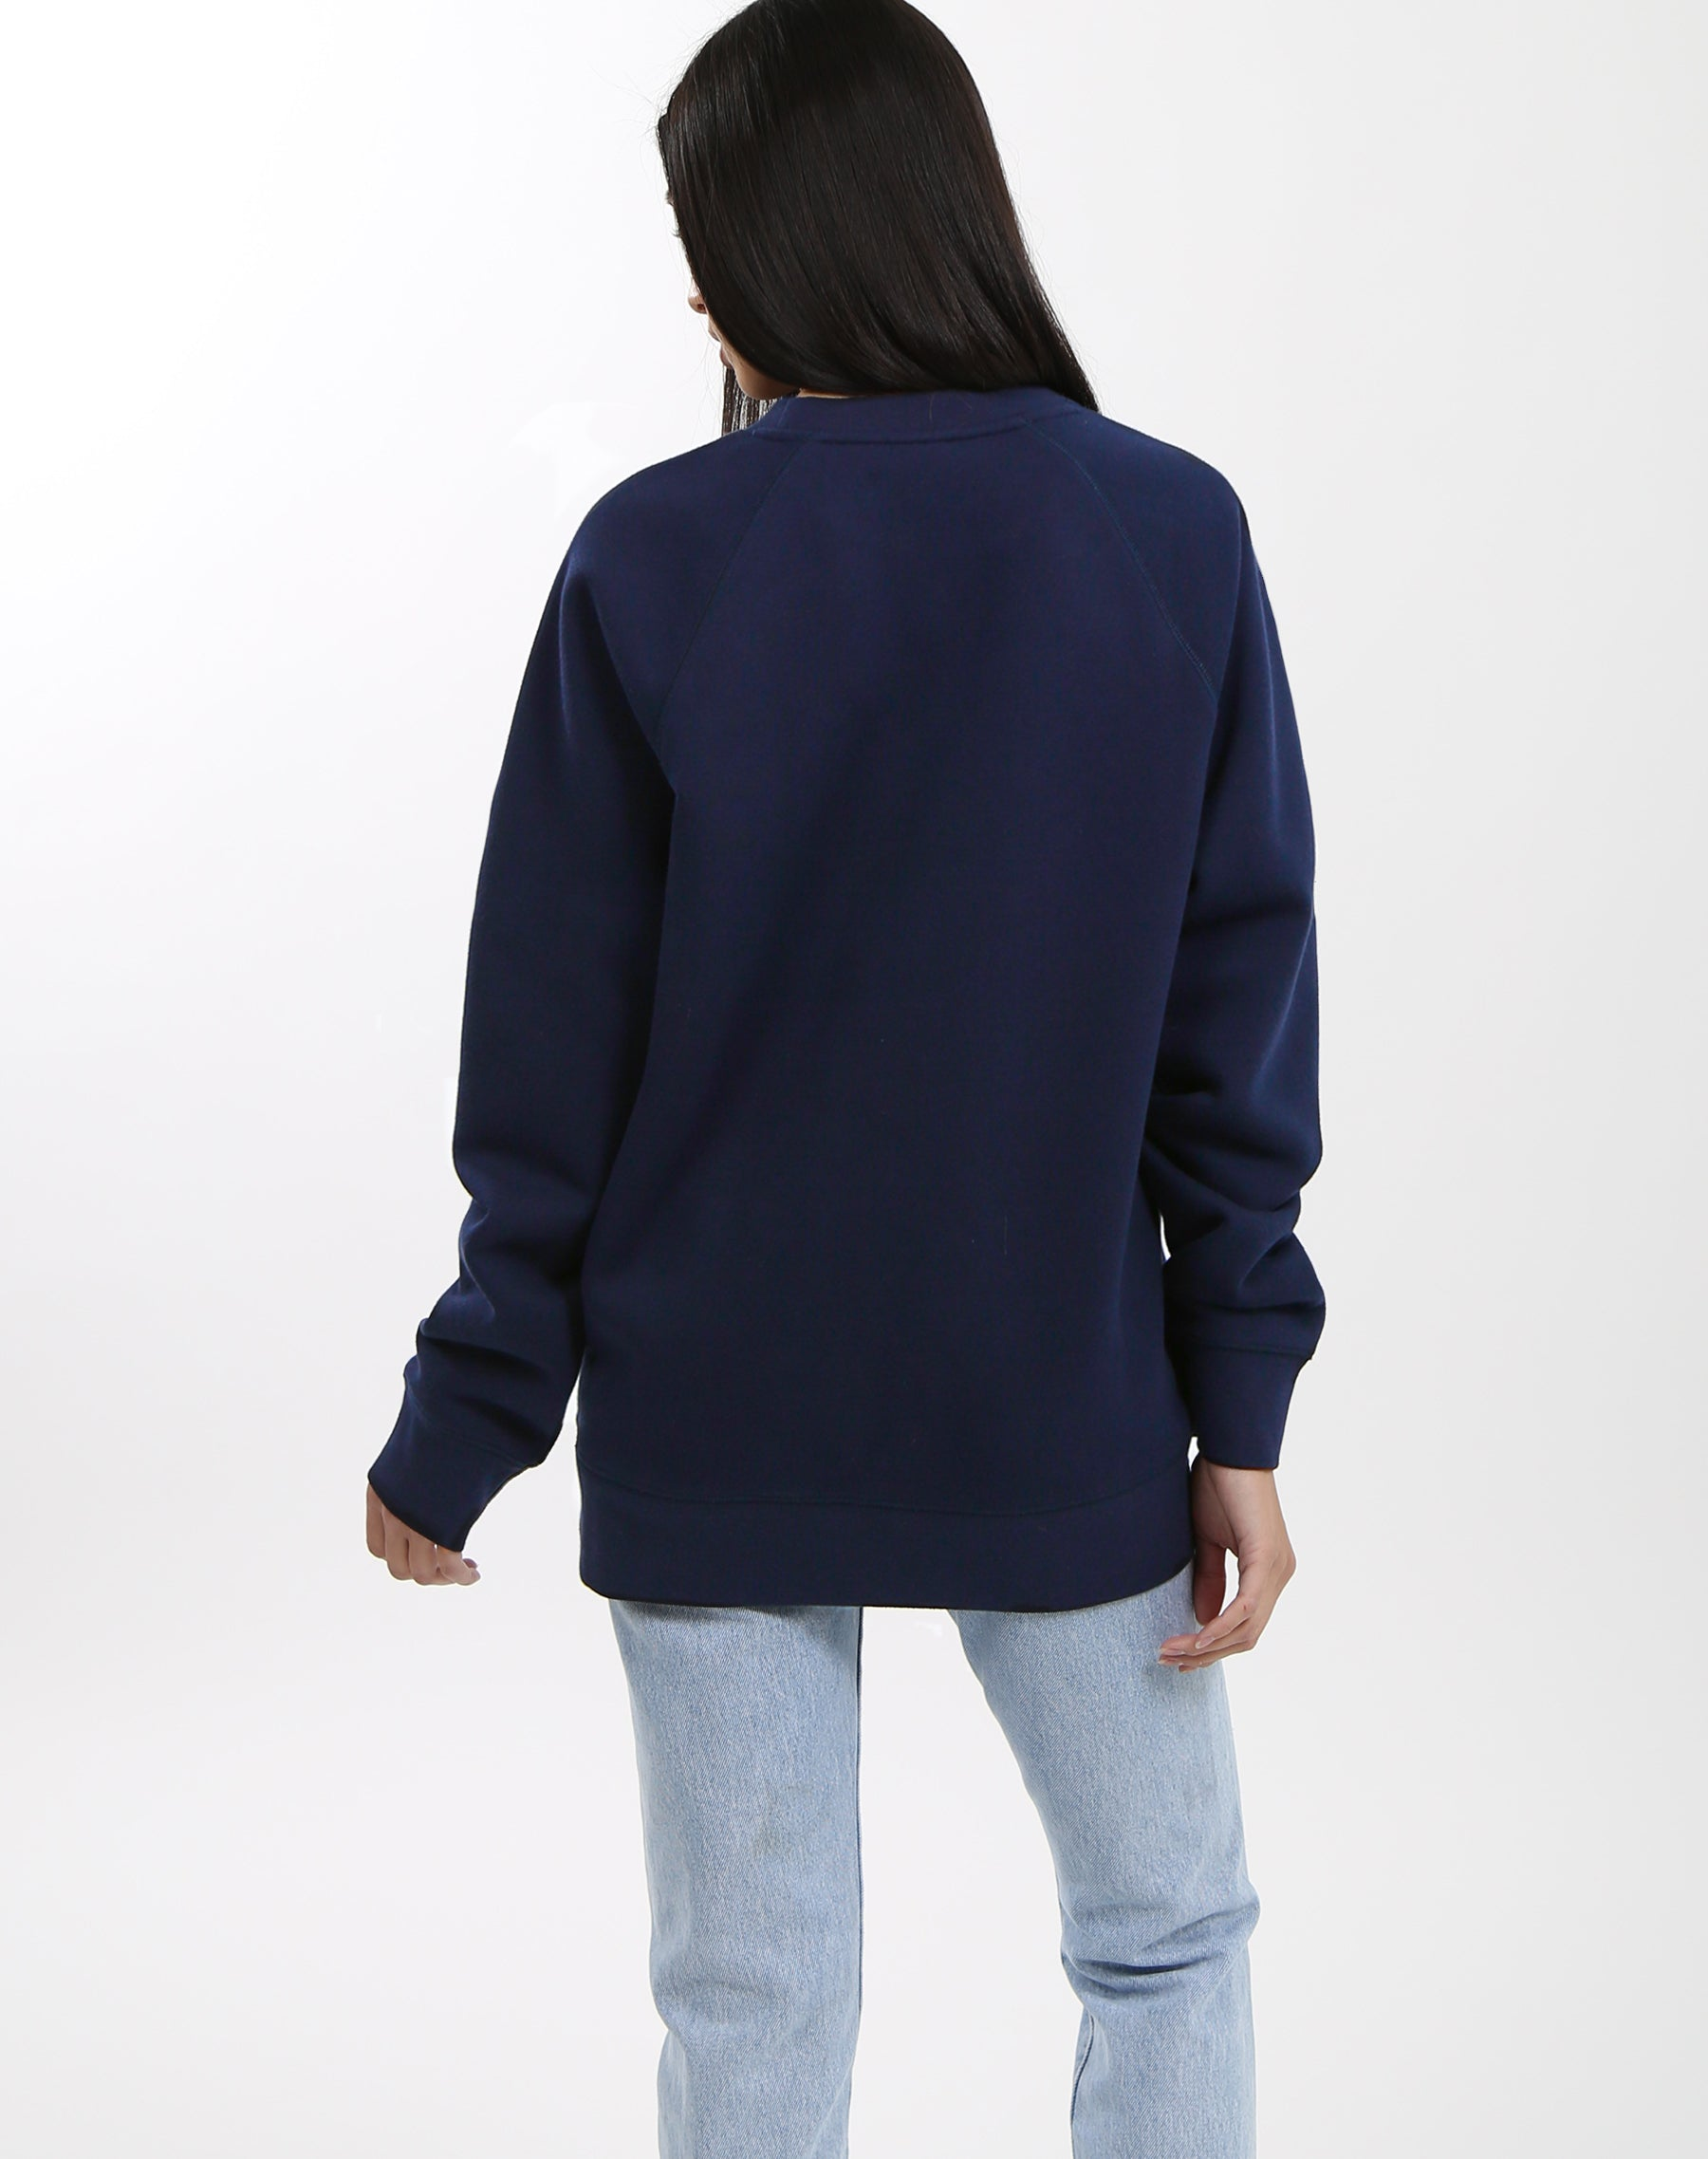 Photo of the back of the Brunette classic crew neck sweatshirt in navy by Brunette the Label.